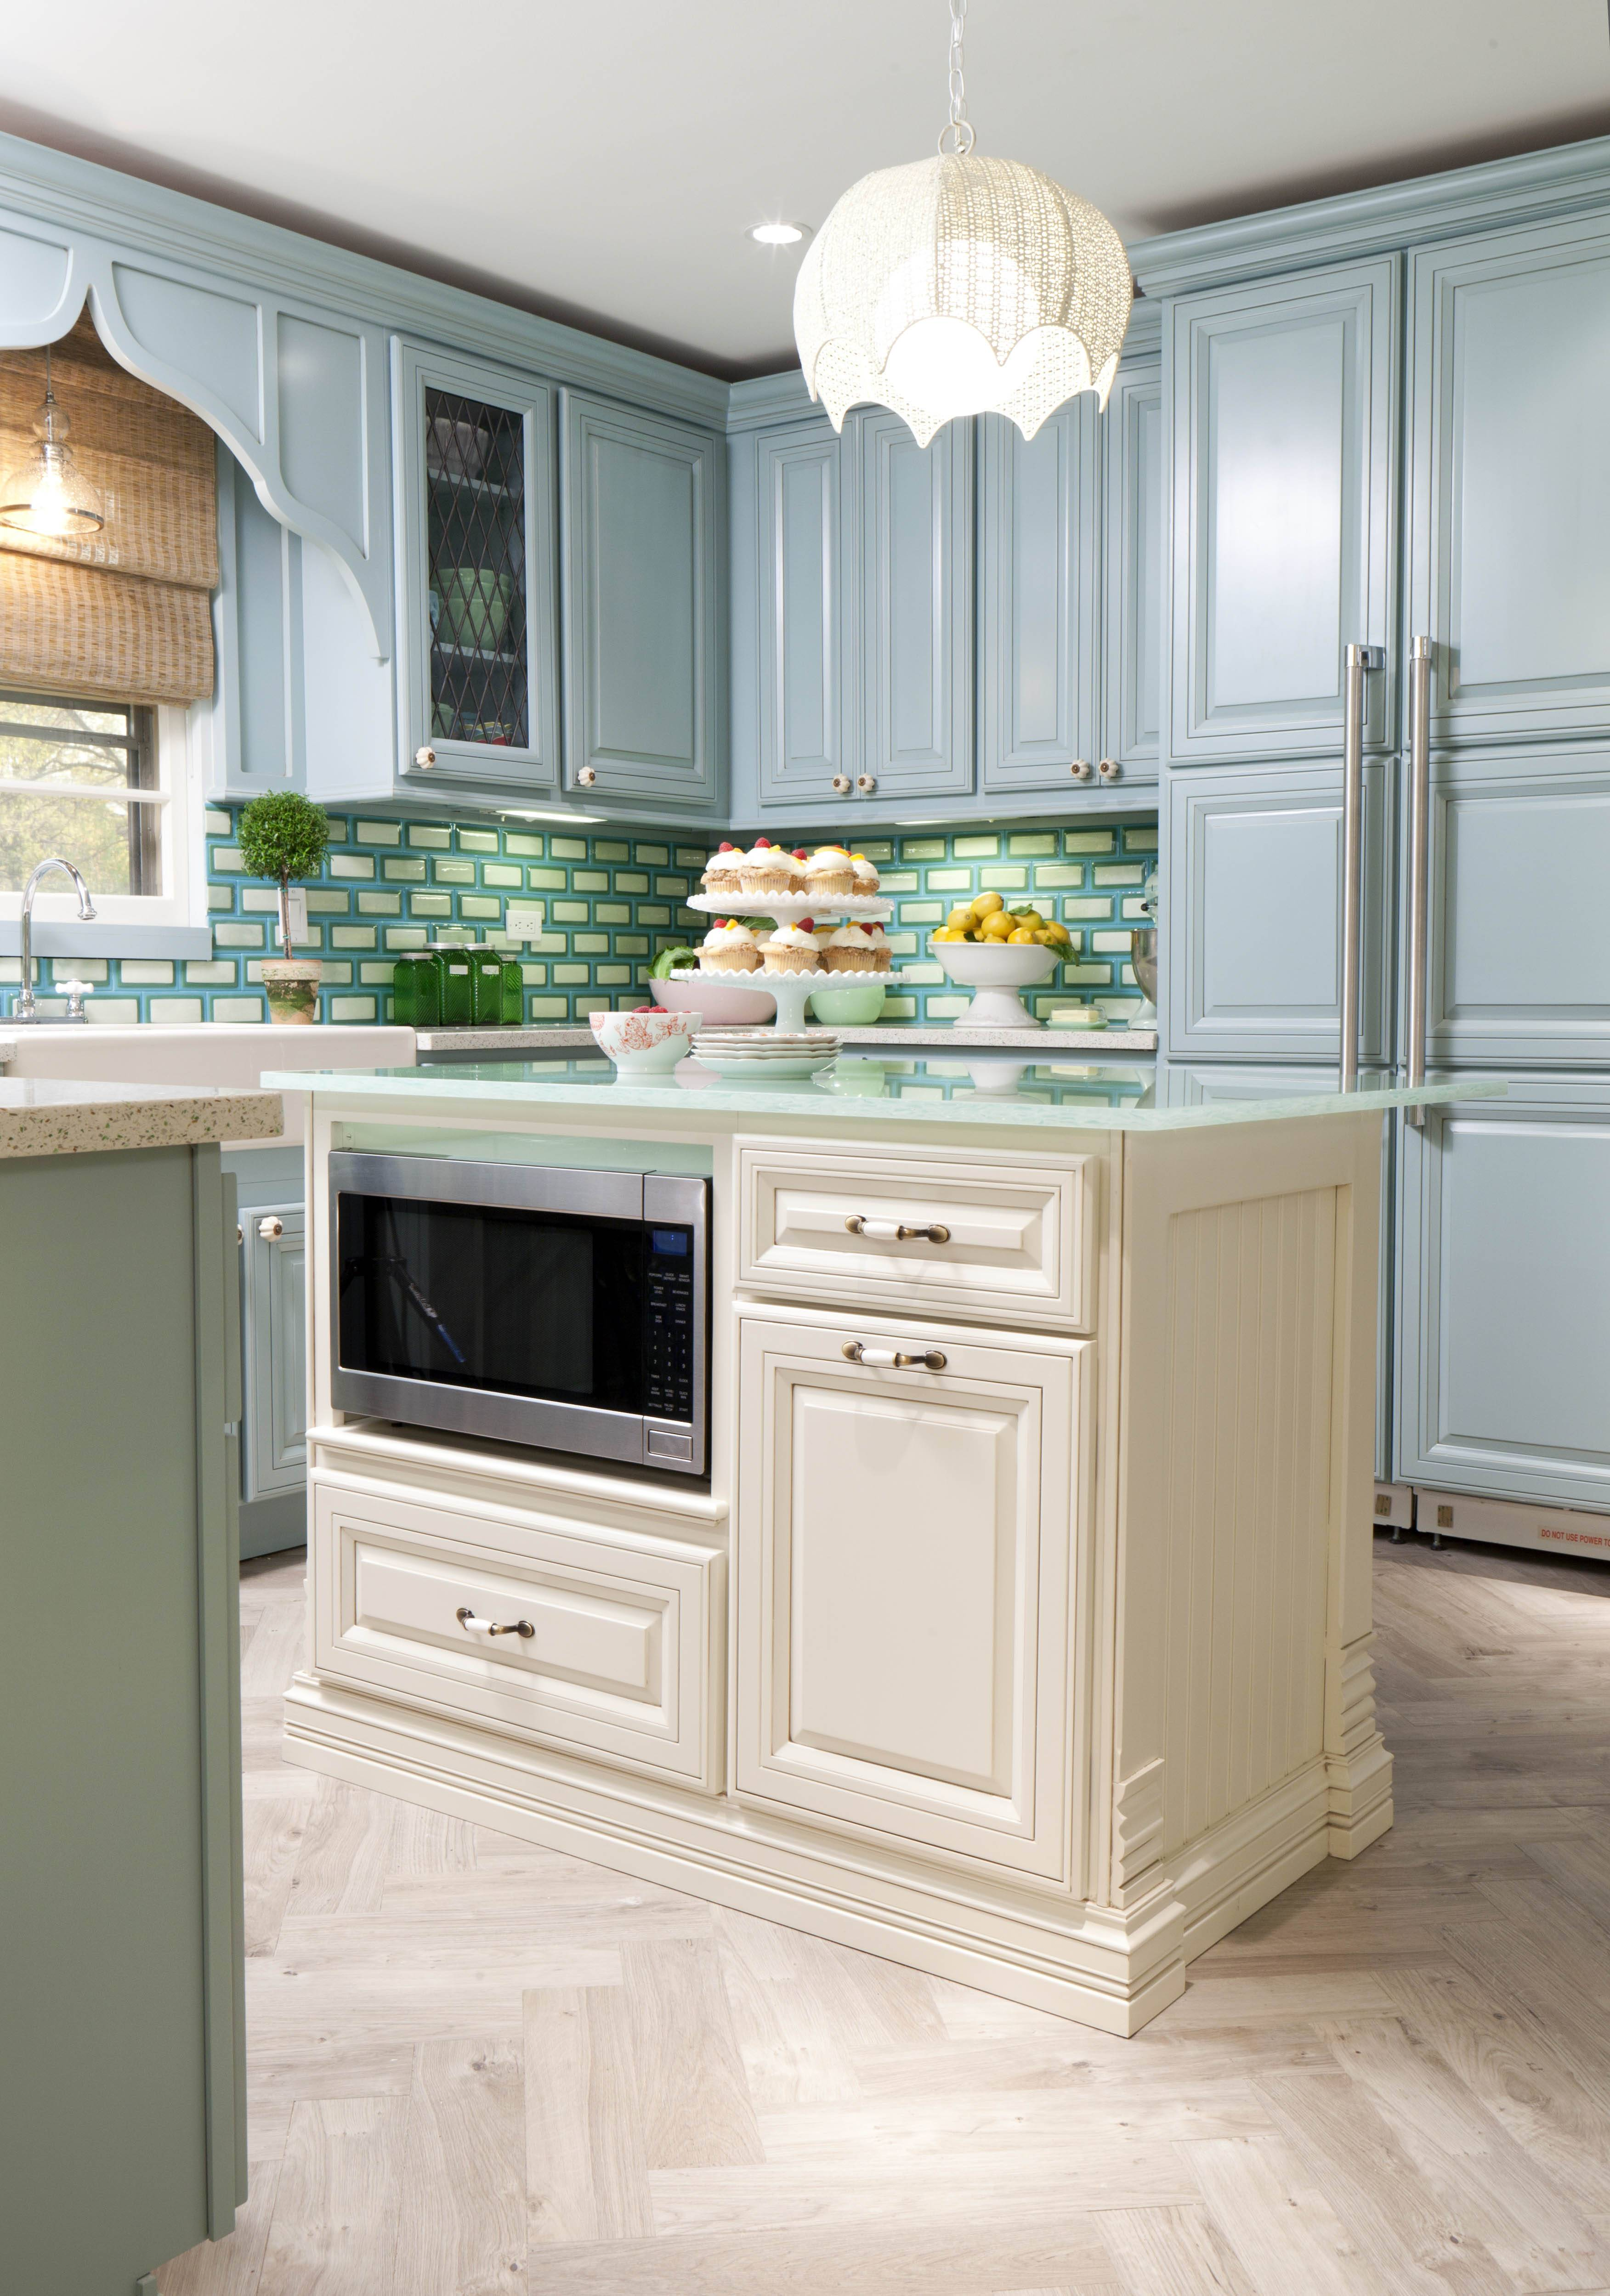 Caswell used crisp, colorful blue green and white fused glass tiles to create a dynamic backsplash in this kitchen. The look is a good blend of contemporary and traditional.